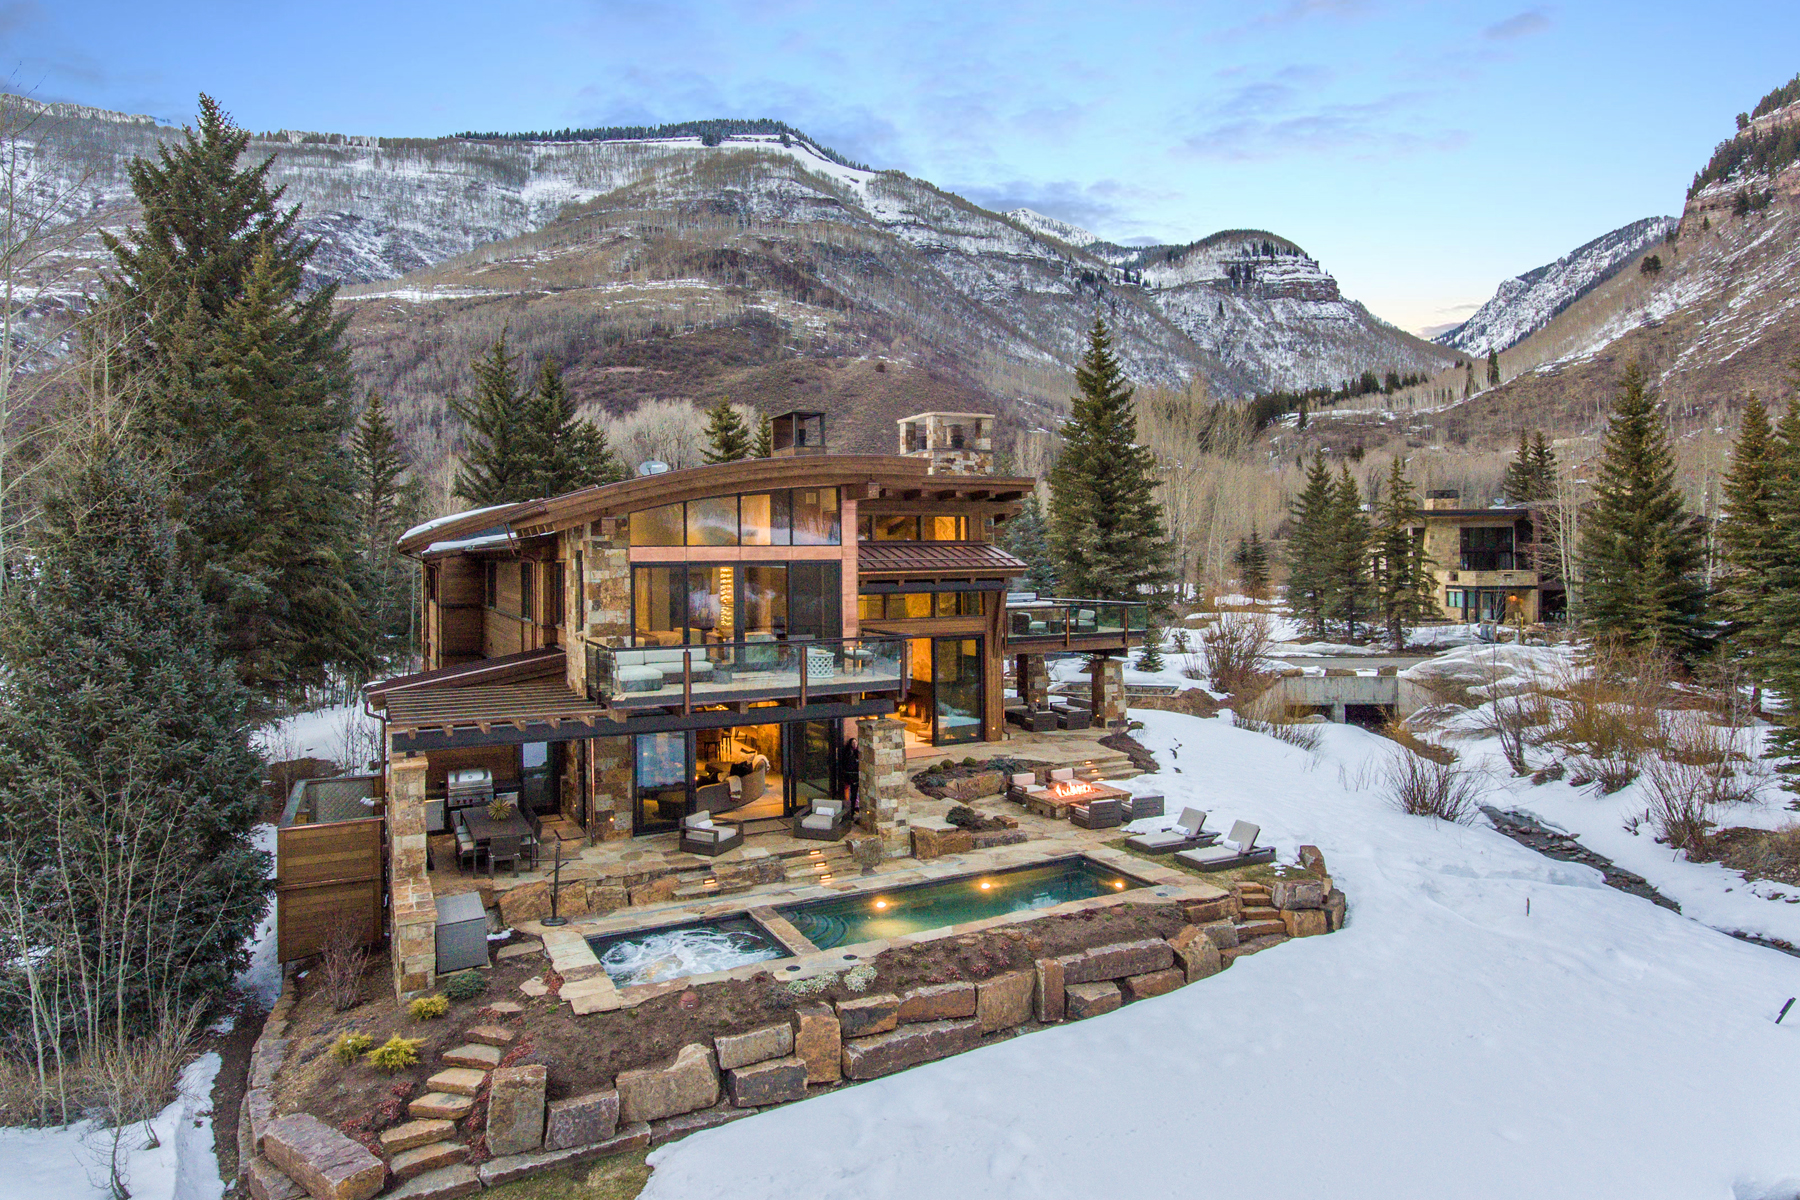 Single Family Home for Active at Modern Masterpiece on Gore Creek 2950 Booth Creek Rd Vail, Colorado 81657 United States